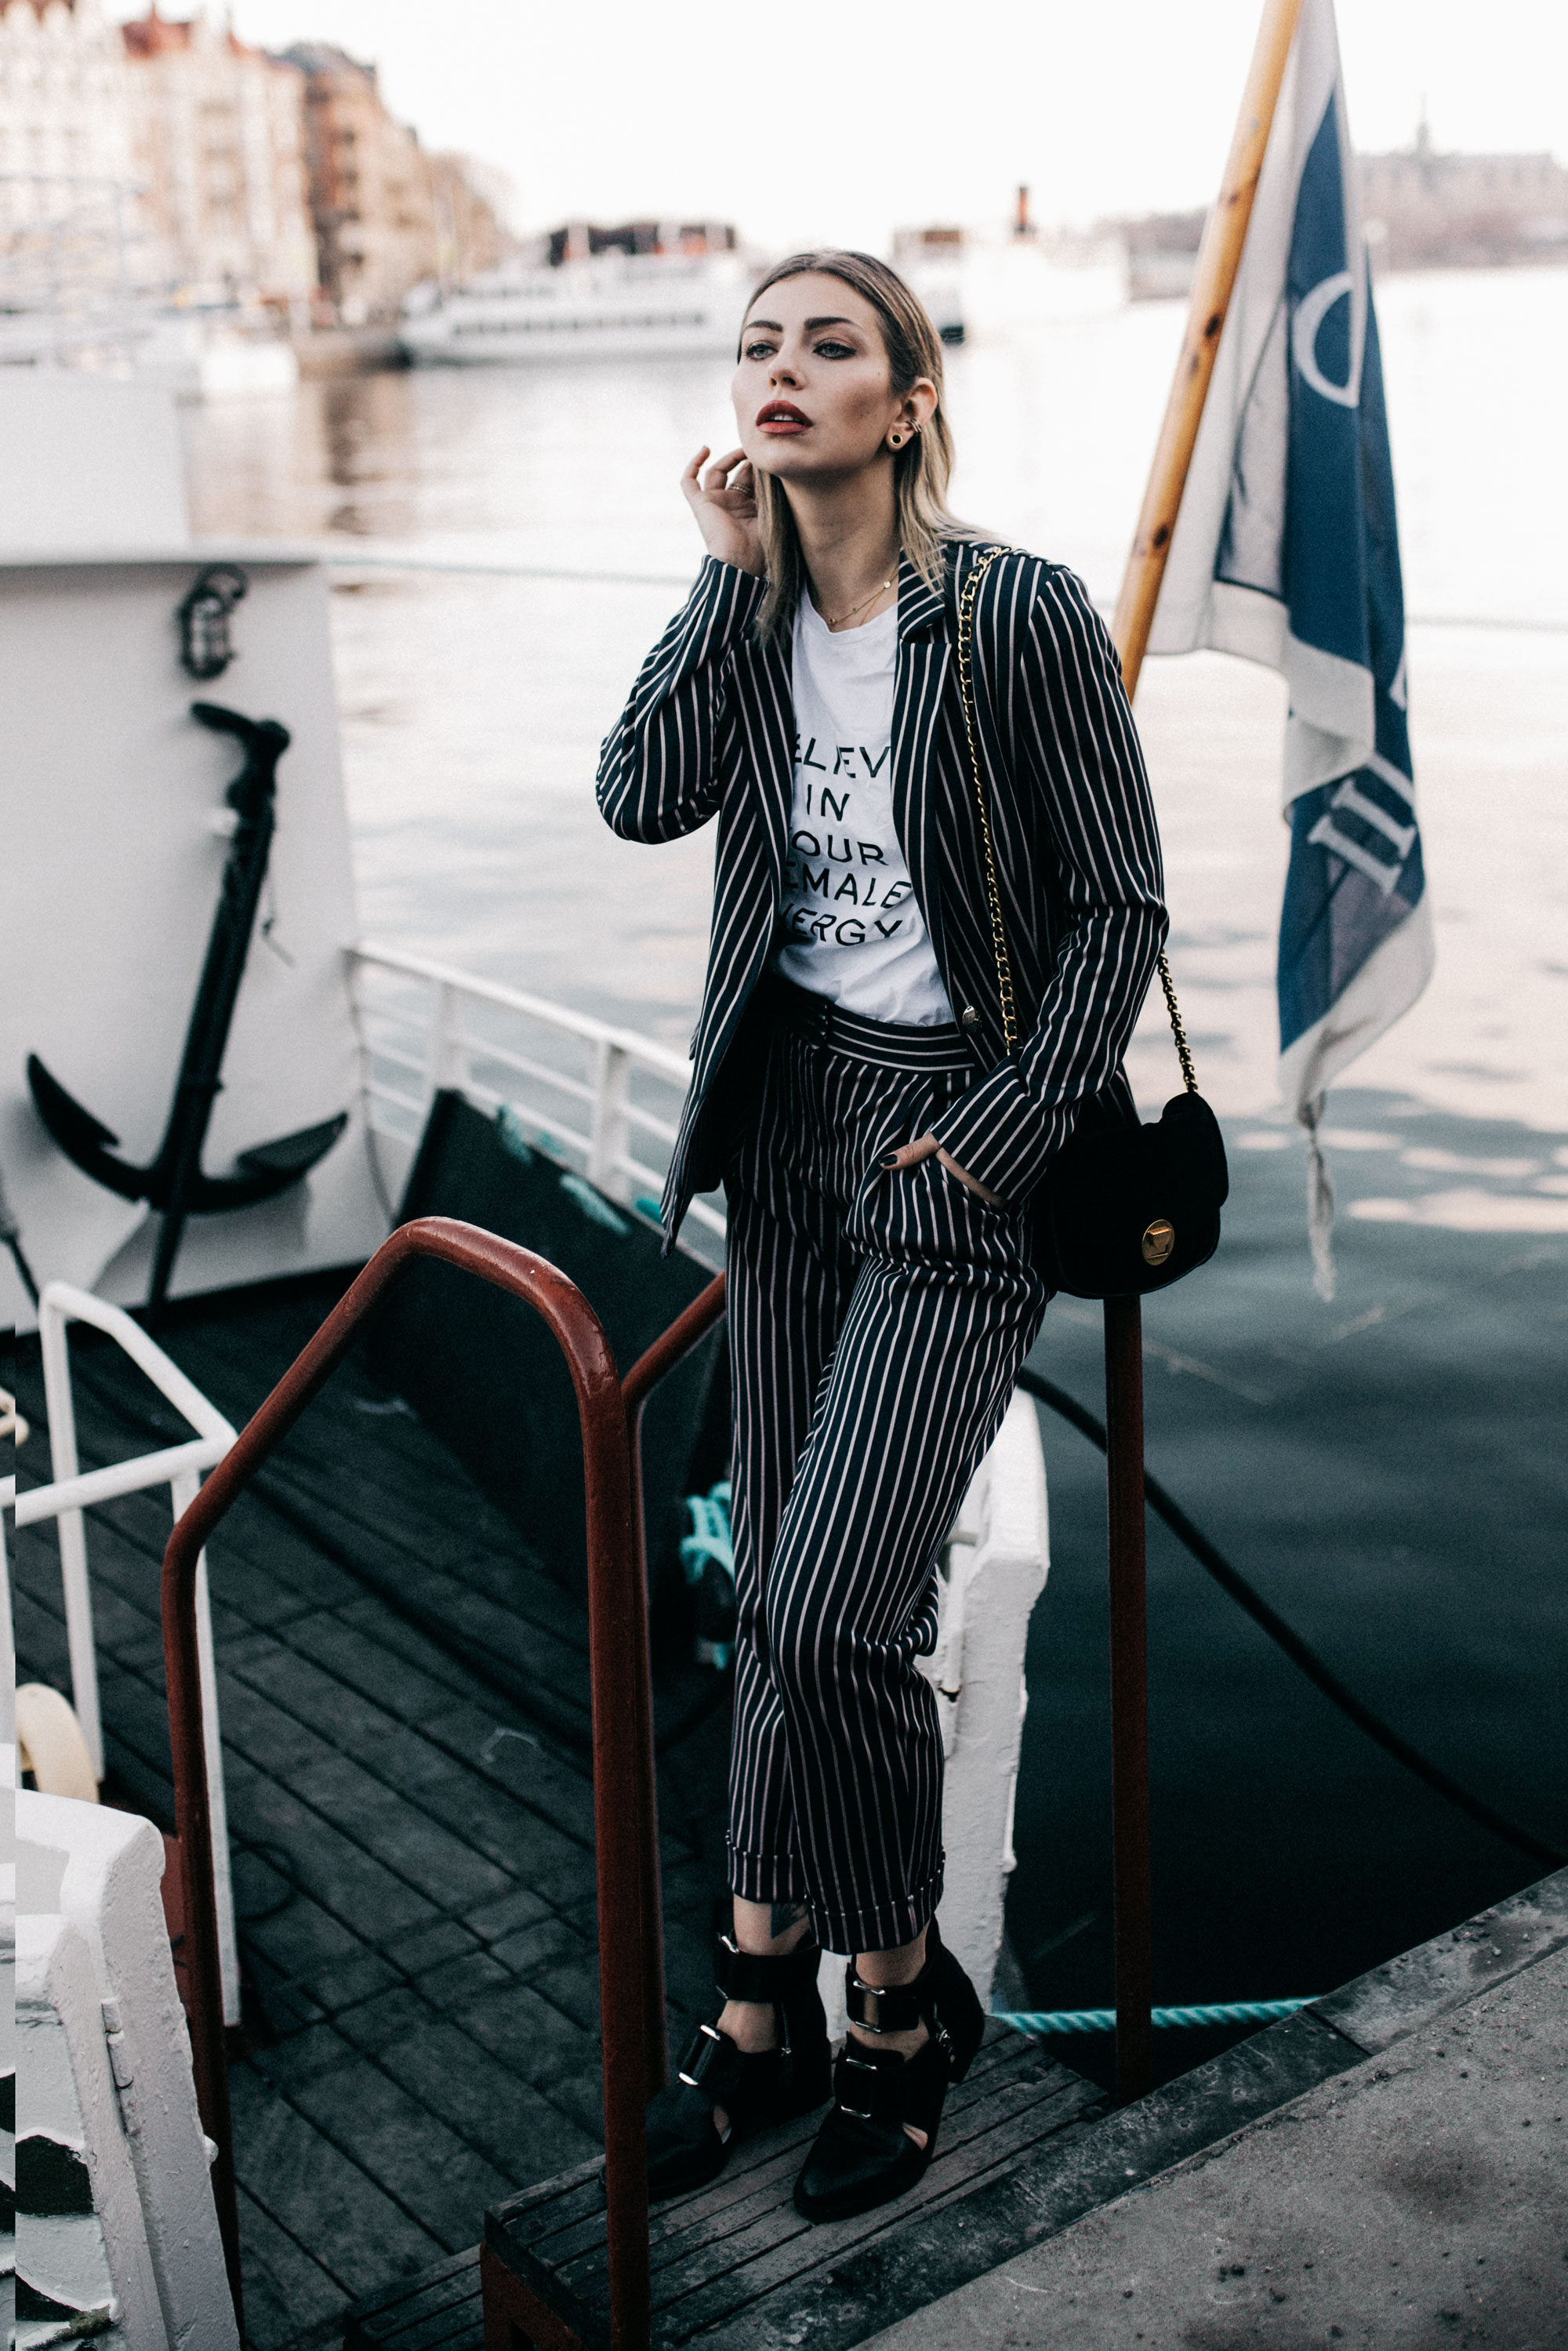 How to achieve your goals in 3 steps and not giving up | outfit: Two piece from Max & Co by Olivia Palermo, open boots from 3.1 Phillip Lim | style: stripes, dandy, business, tomboy, Statement shirt